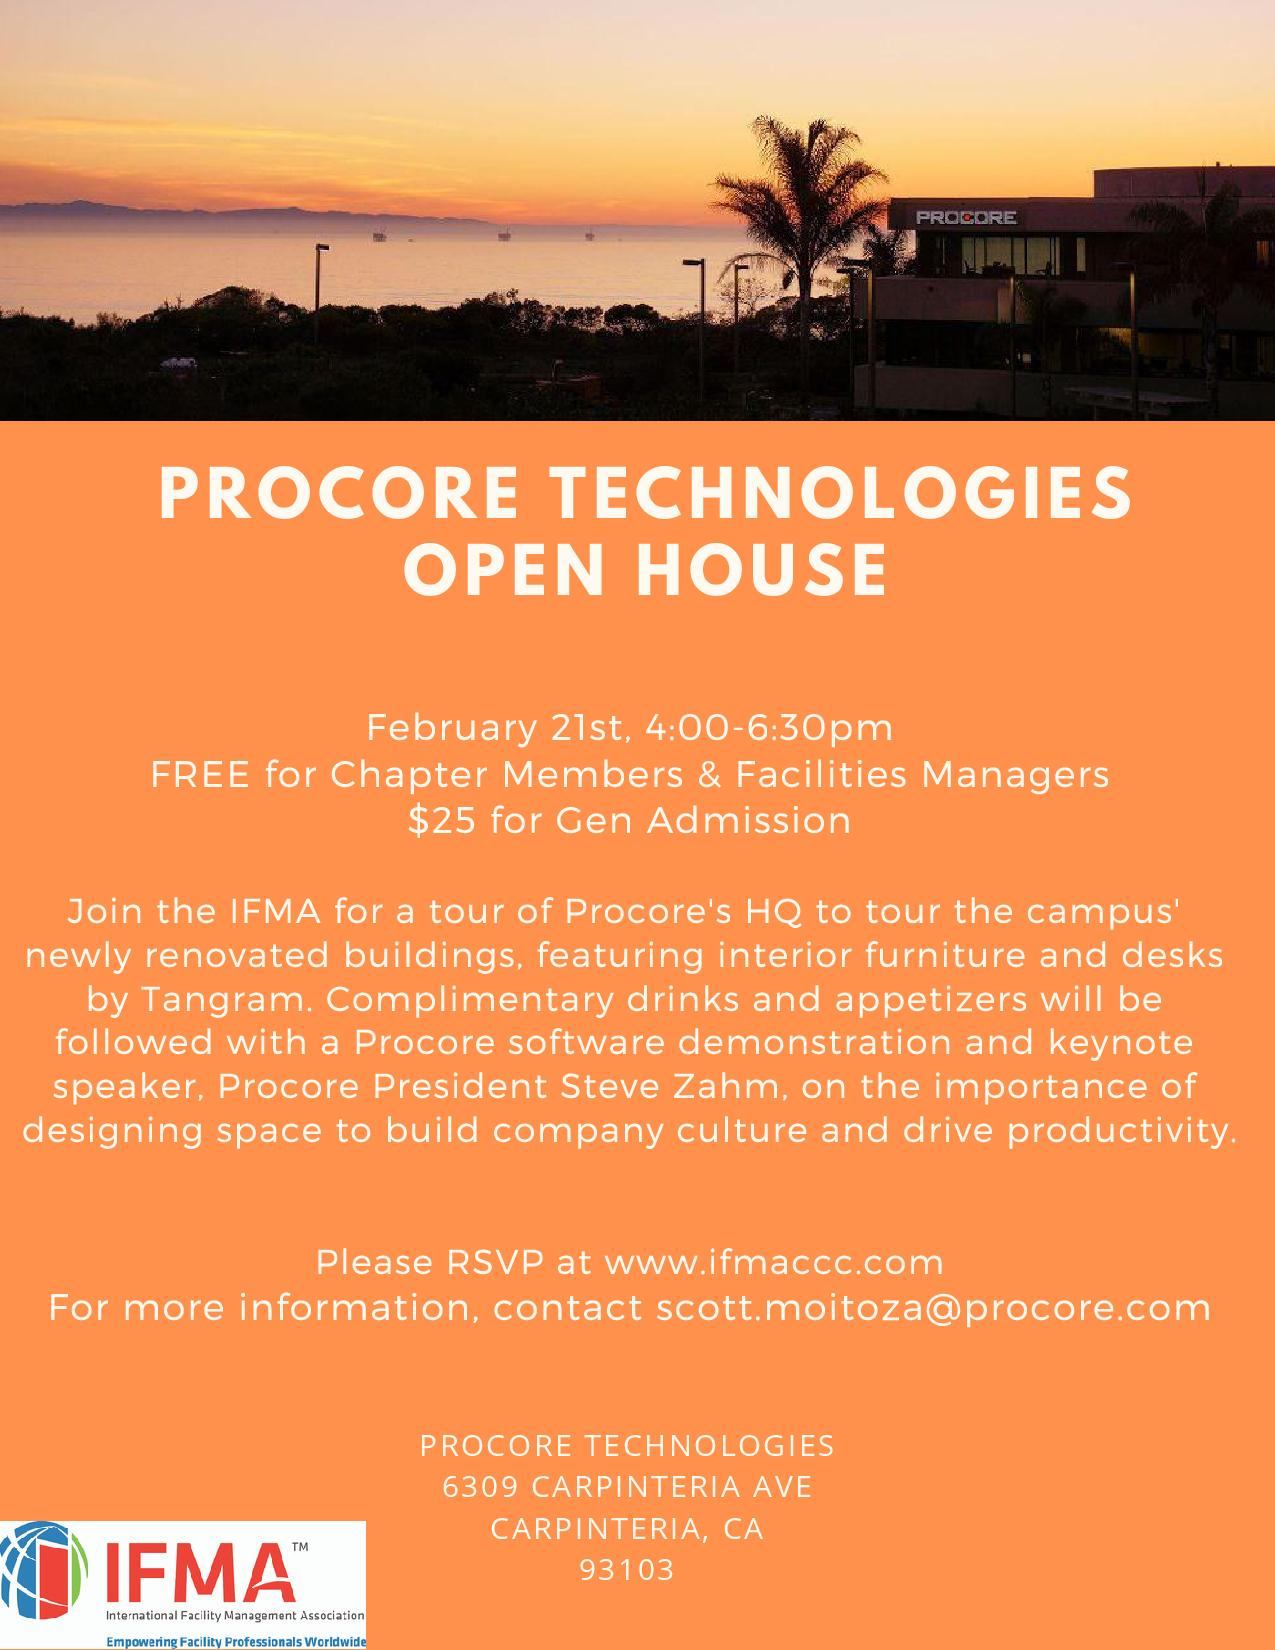 Procore Technologies Open House